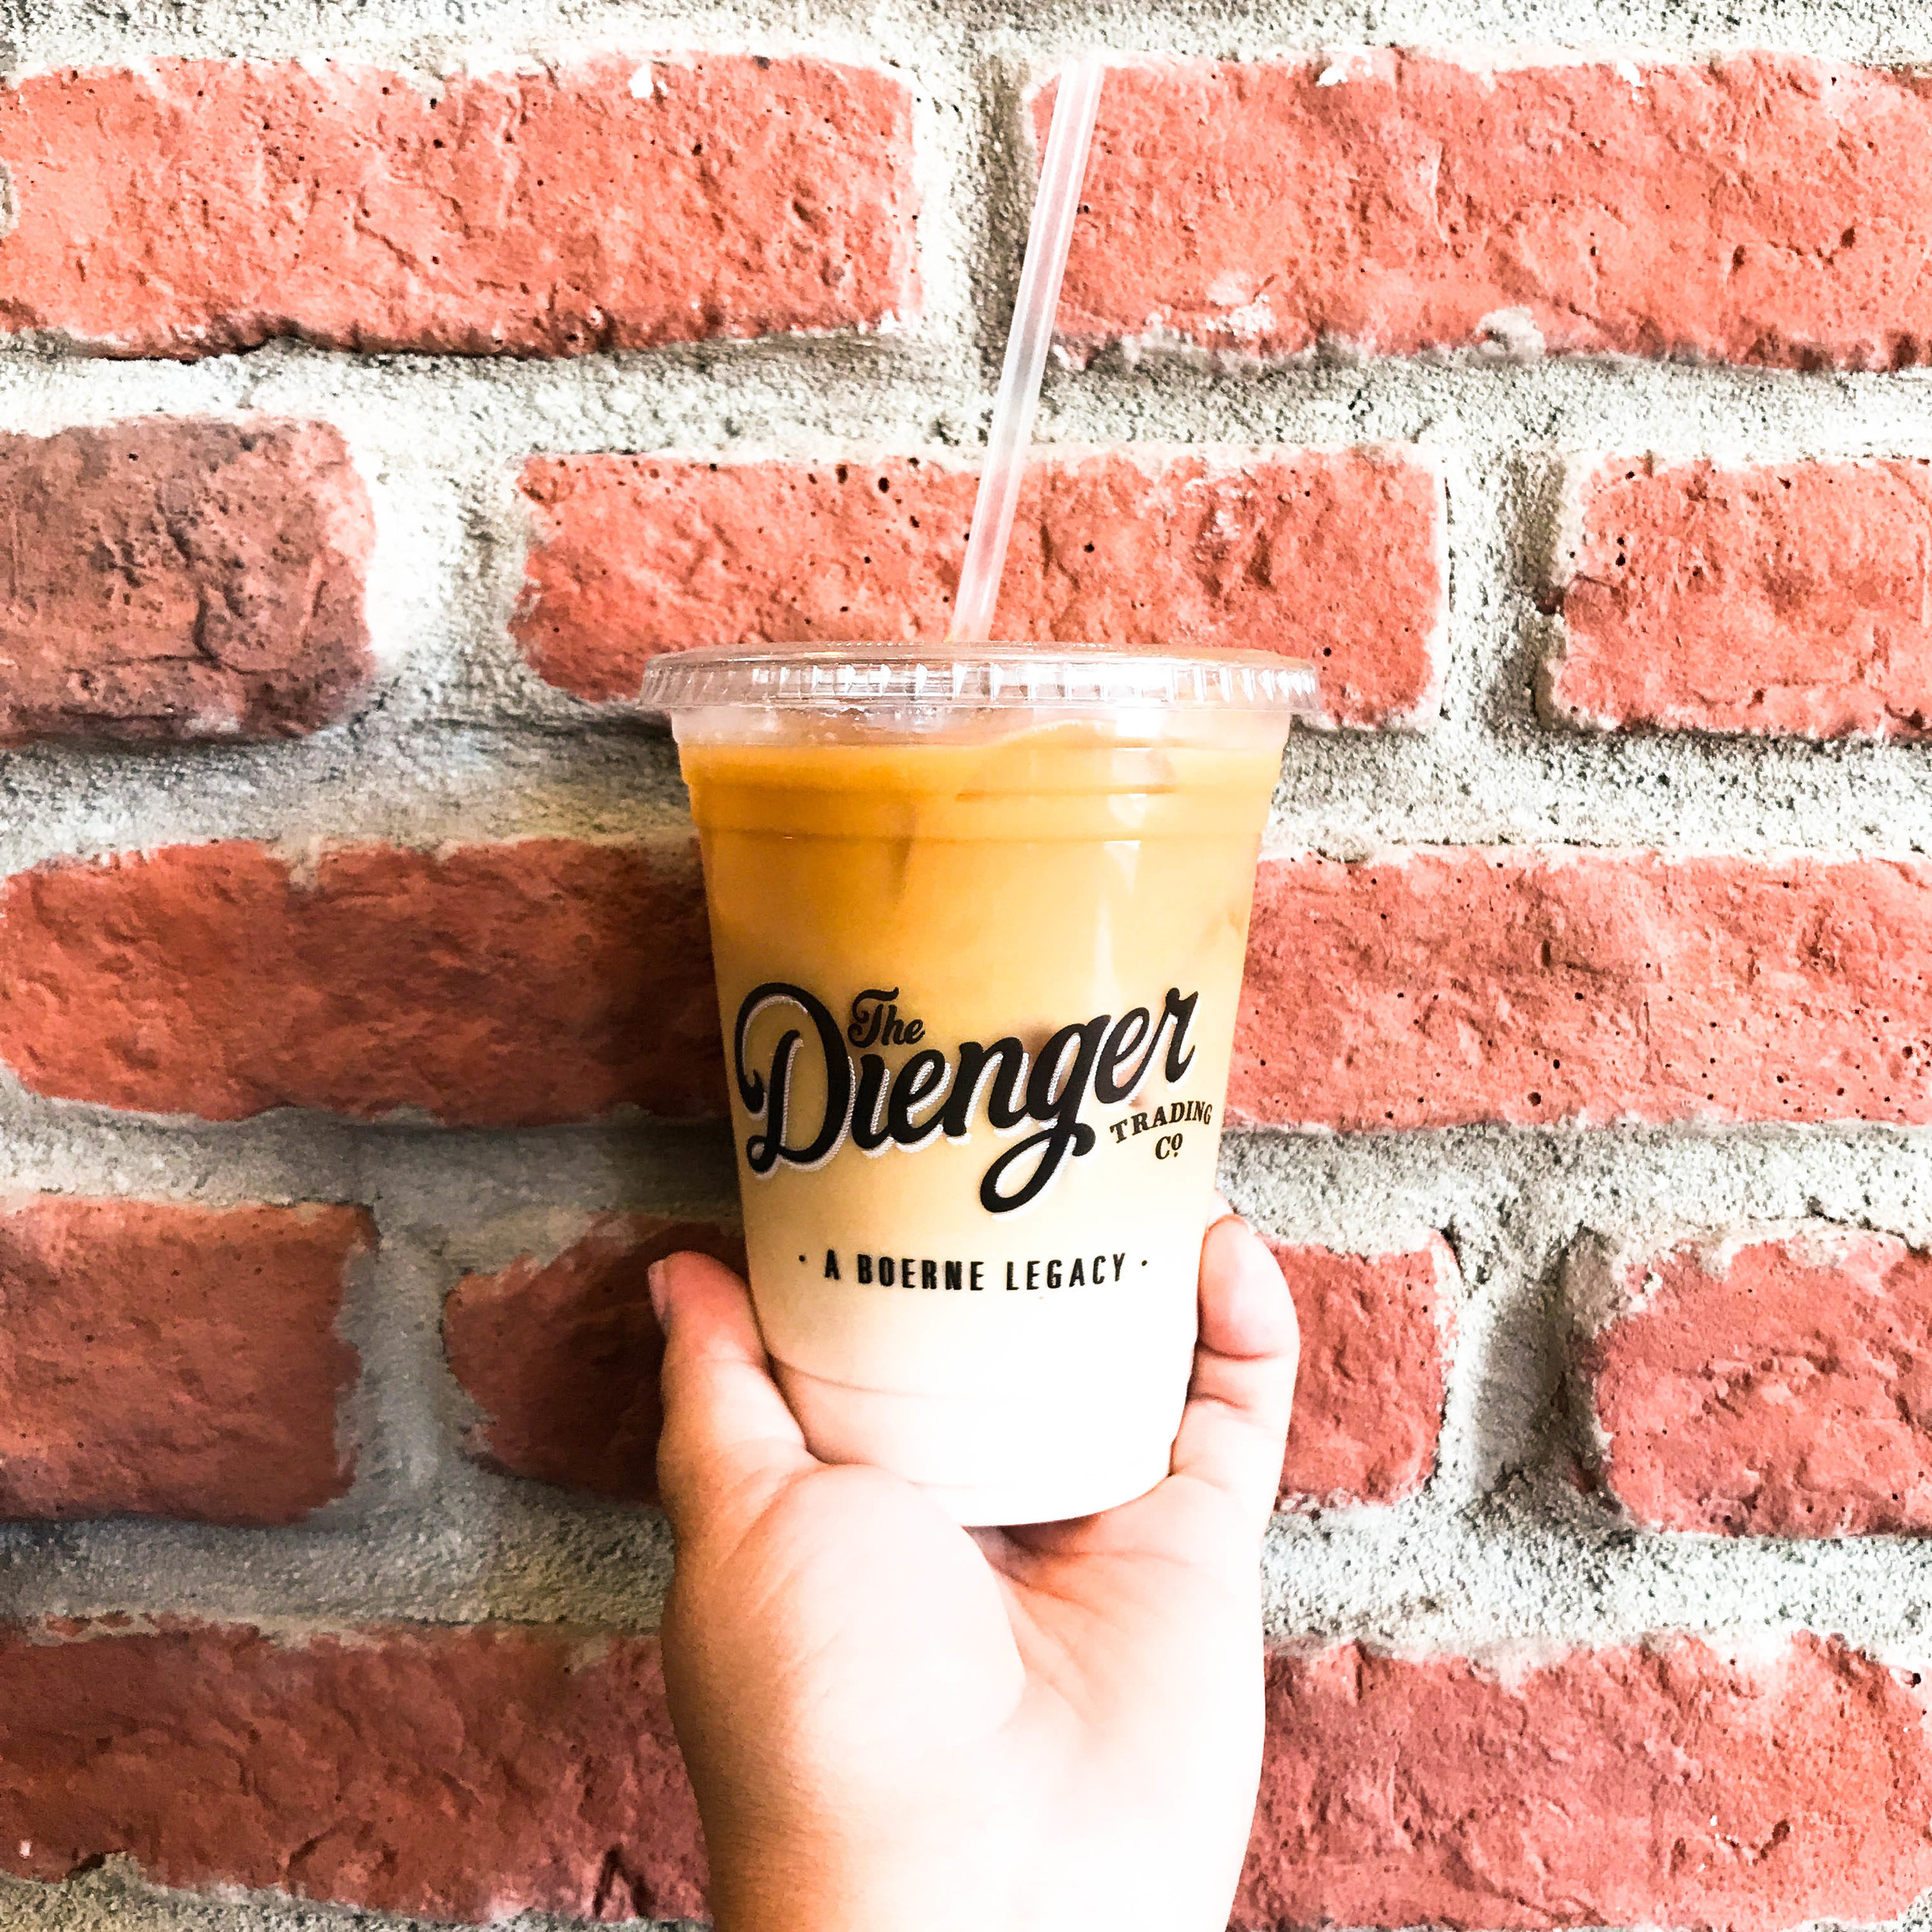 Iced Coffee from The Dienger Trading Company in Boerne, TX